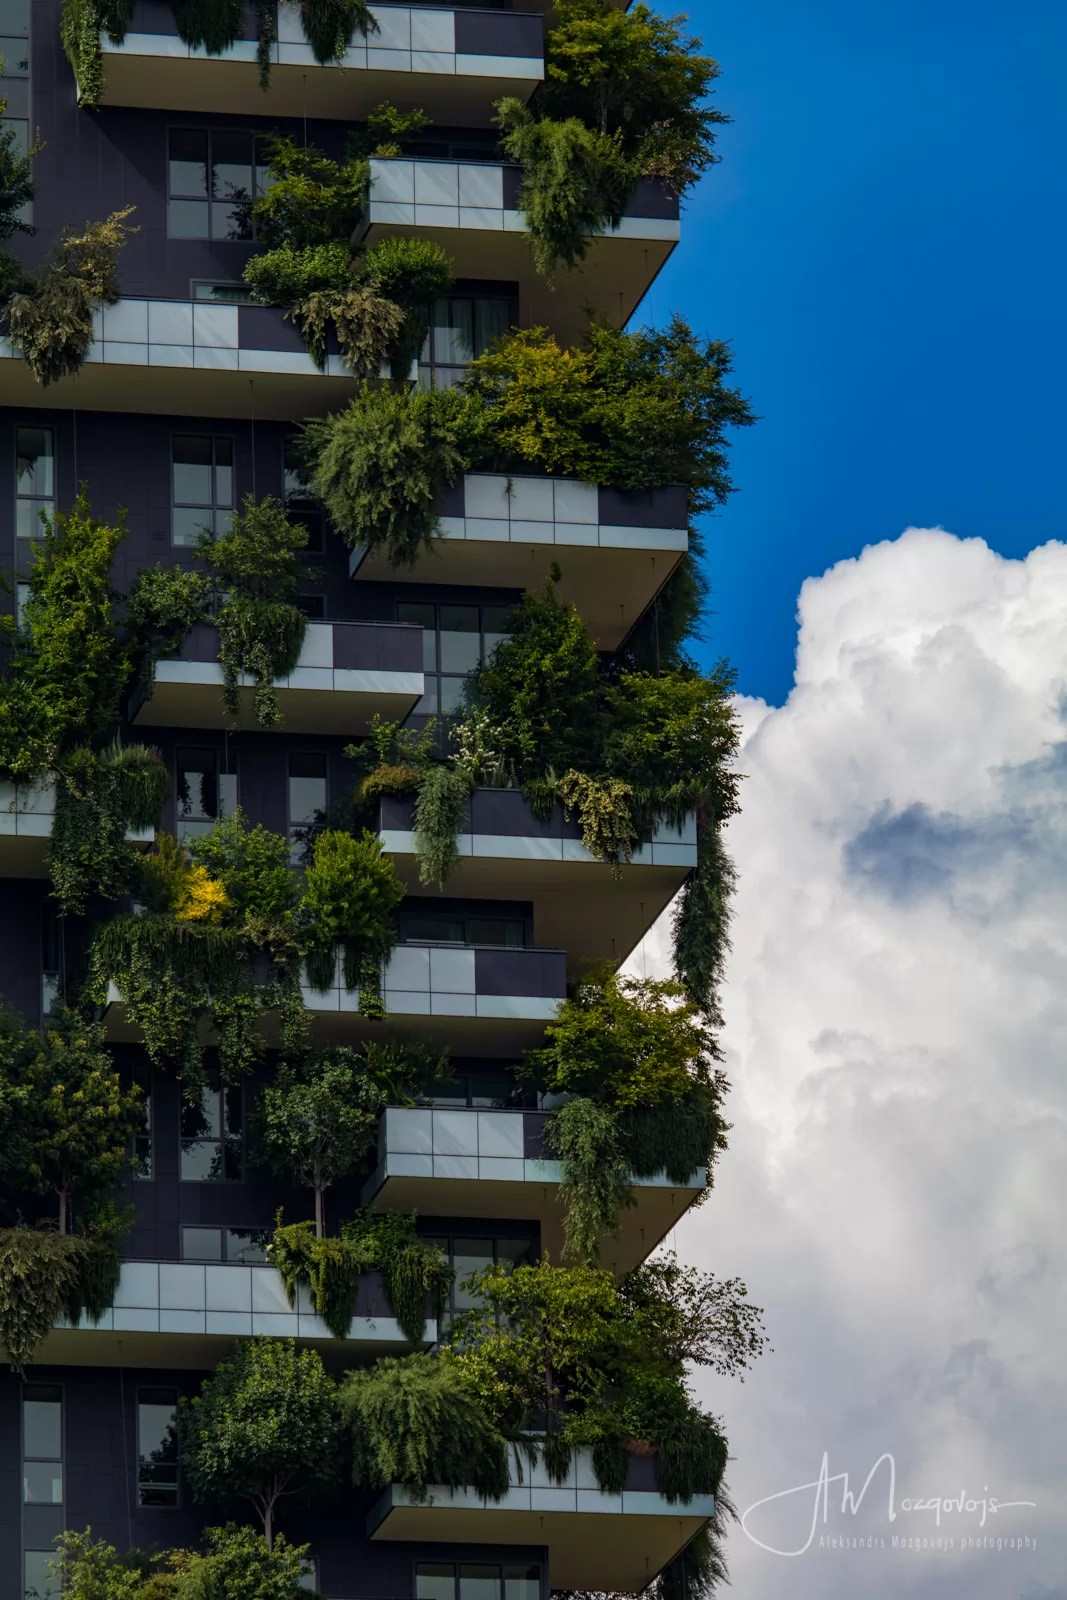 An eco-building Vertical Forest is a great subject for photography in Milan